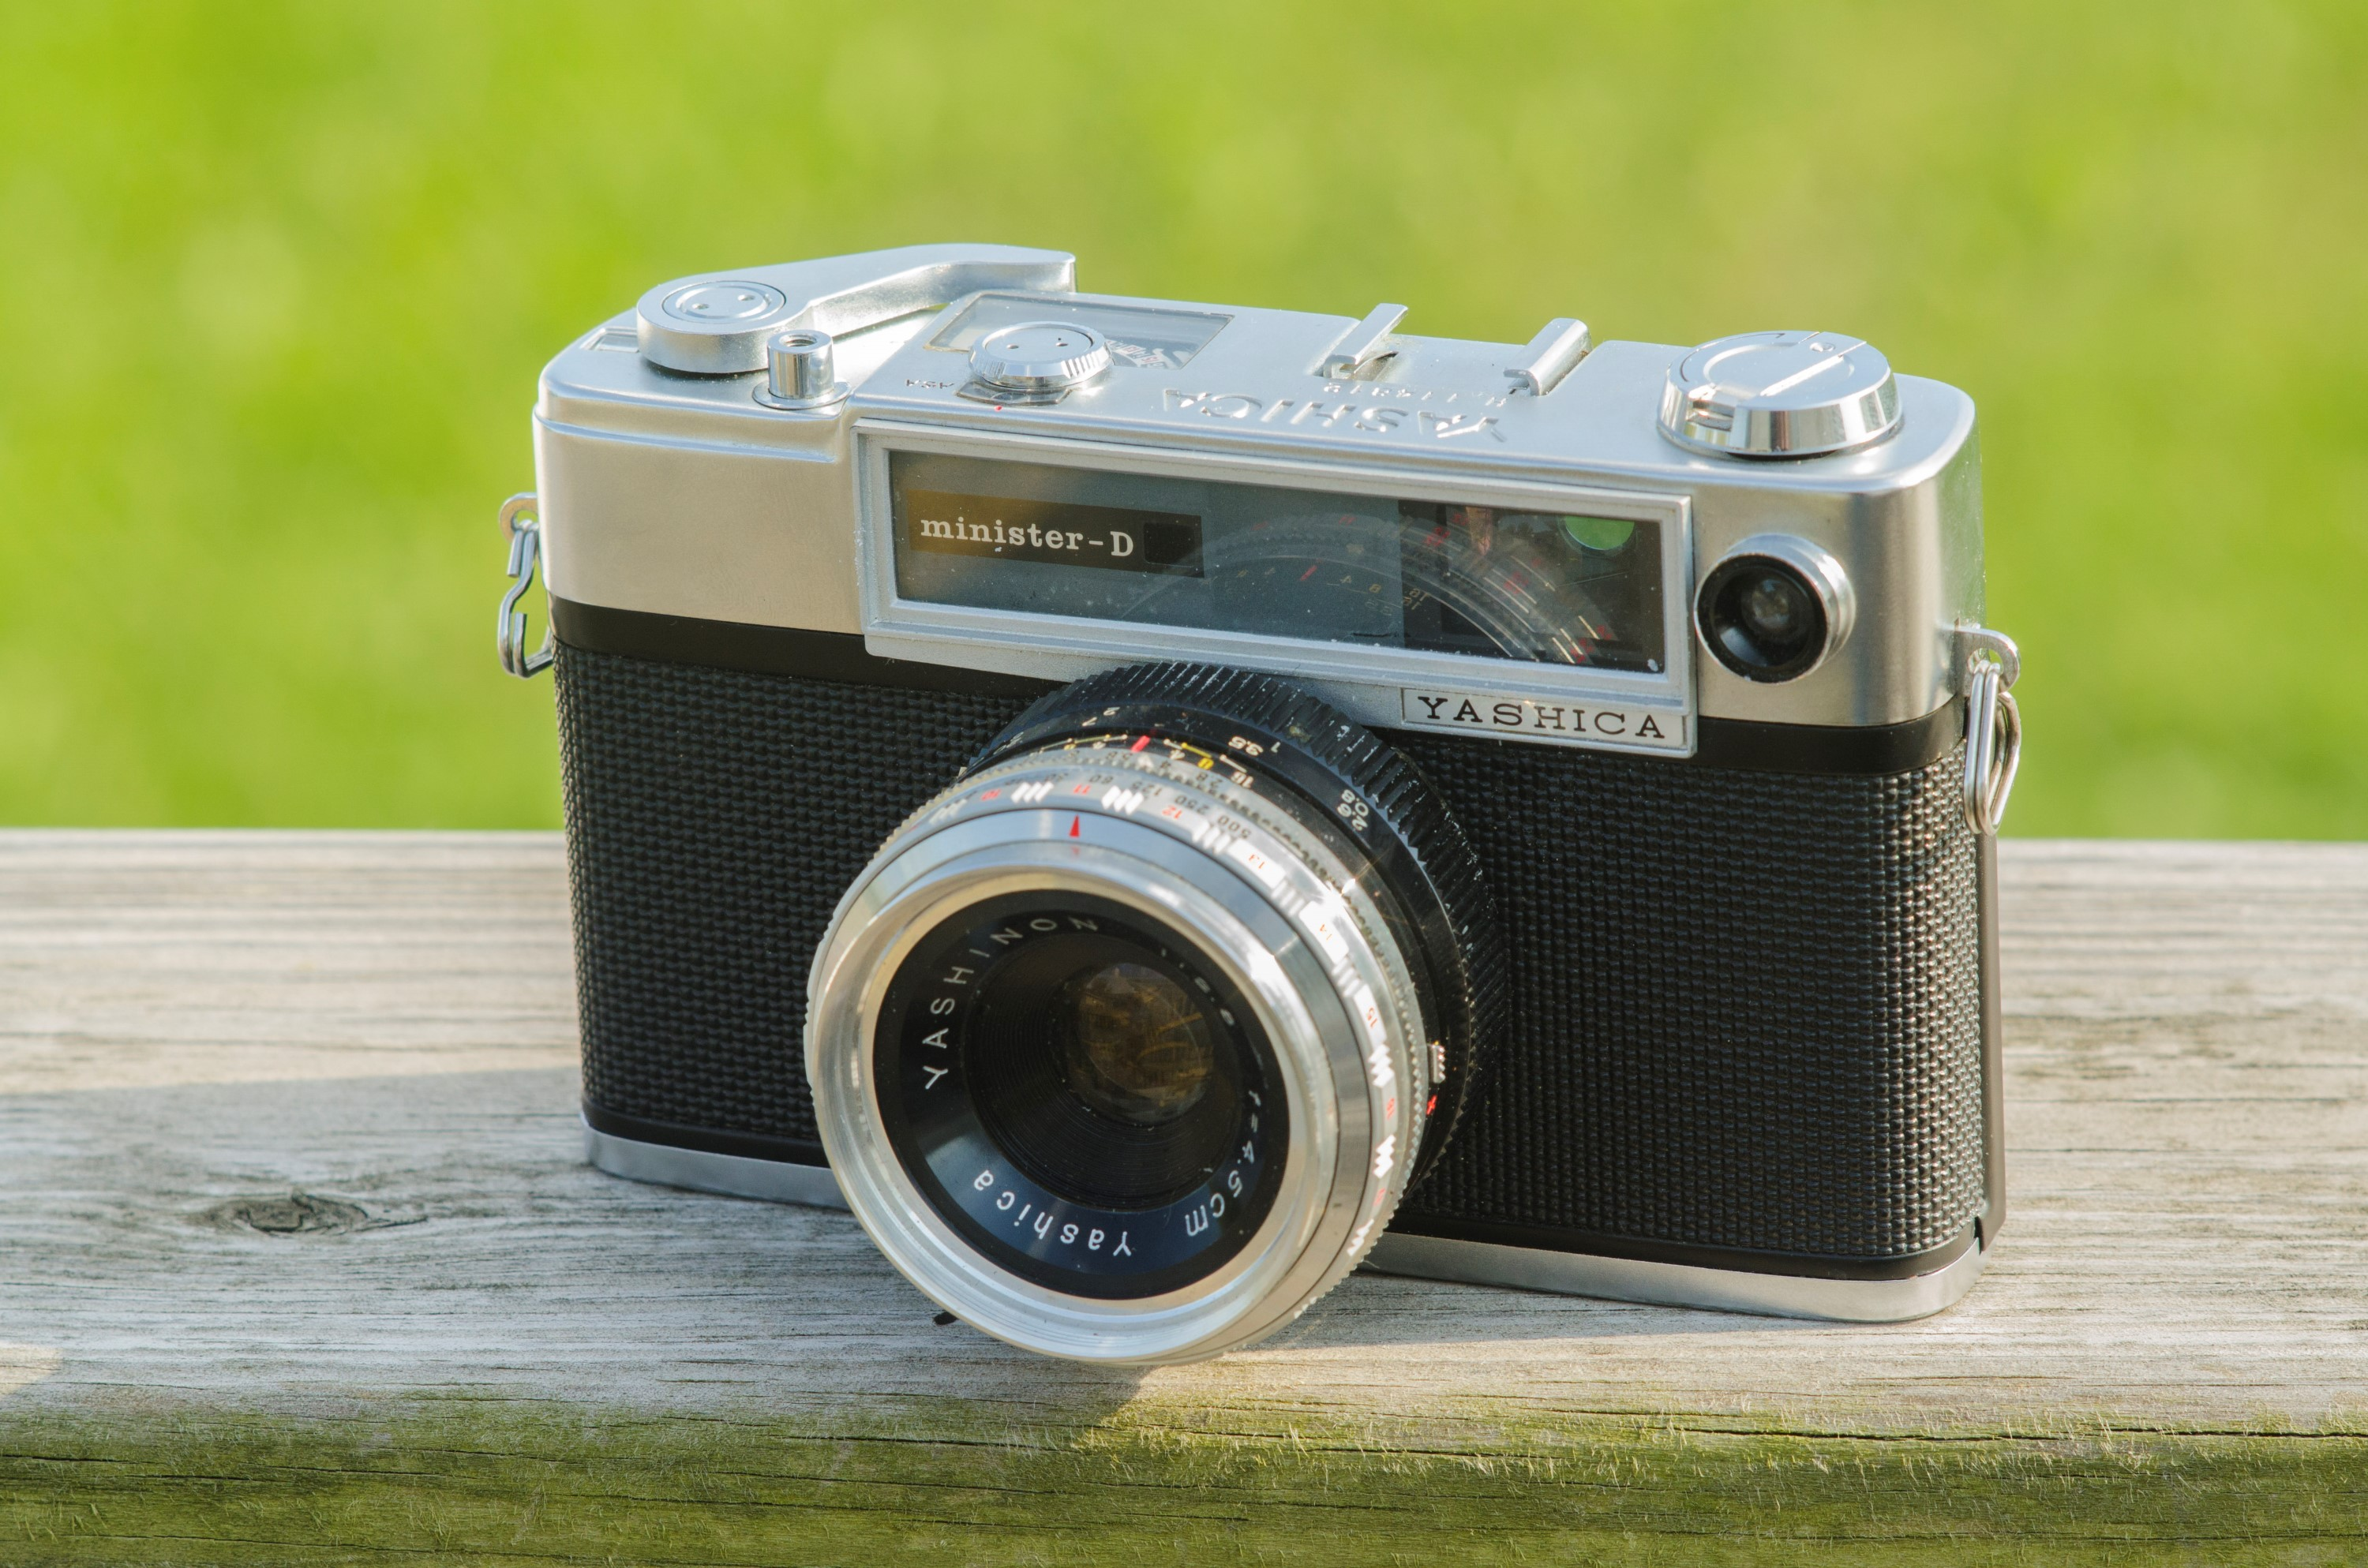 Yashica Minister-D (1963)